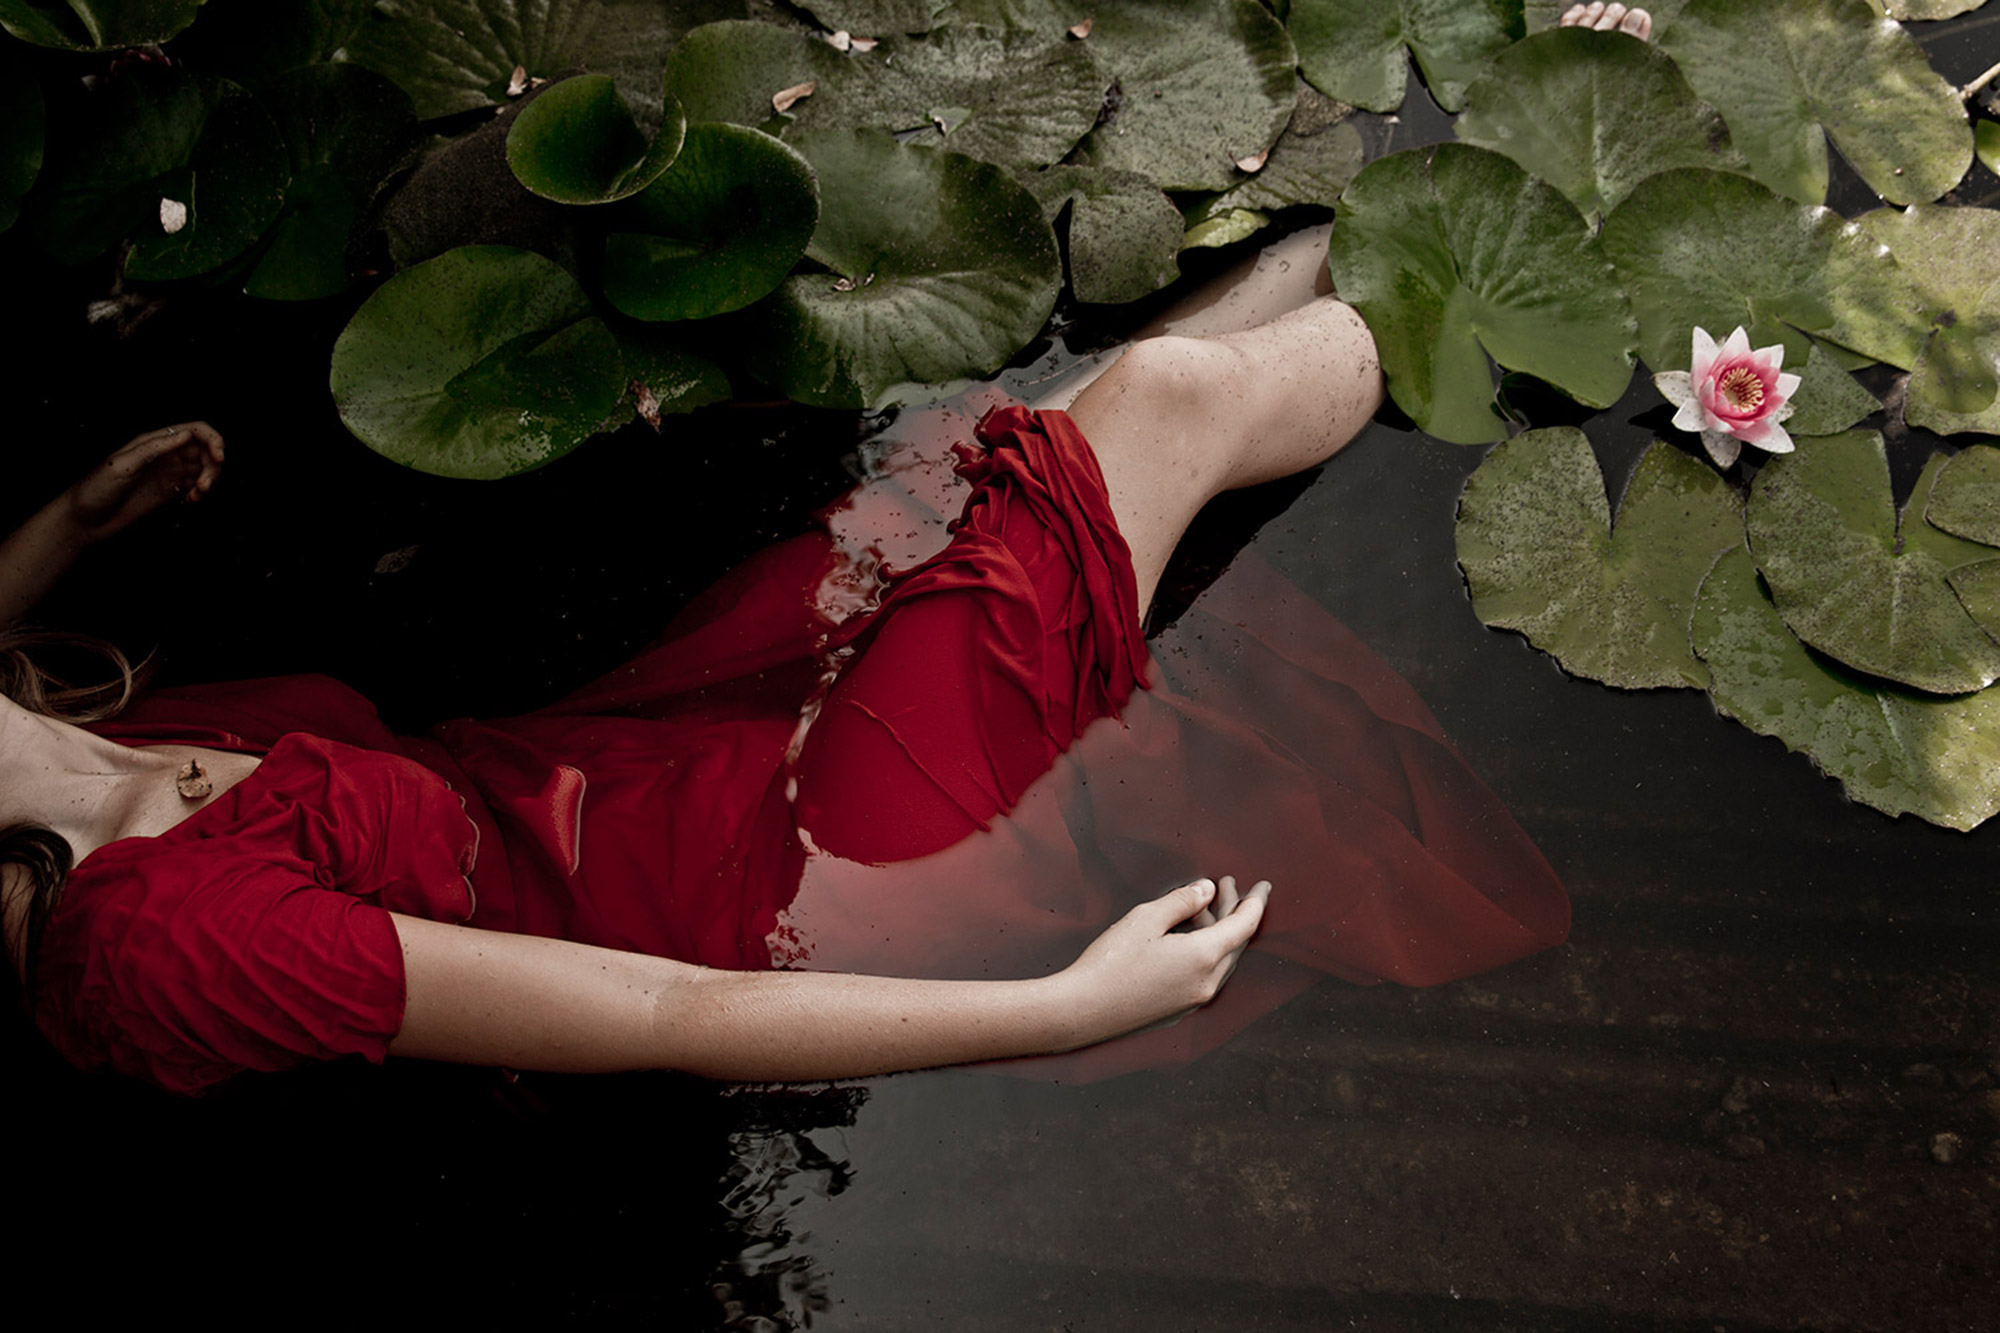 Monia Merlo - lost - red dress cover